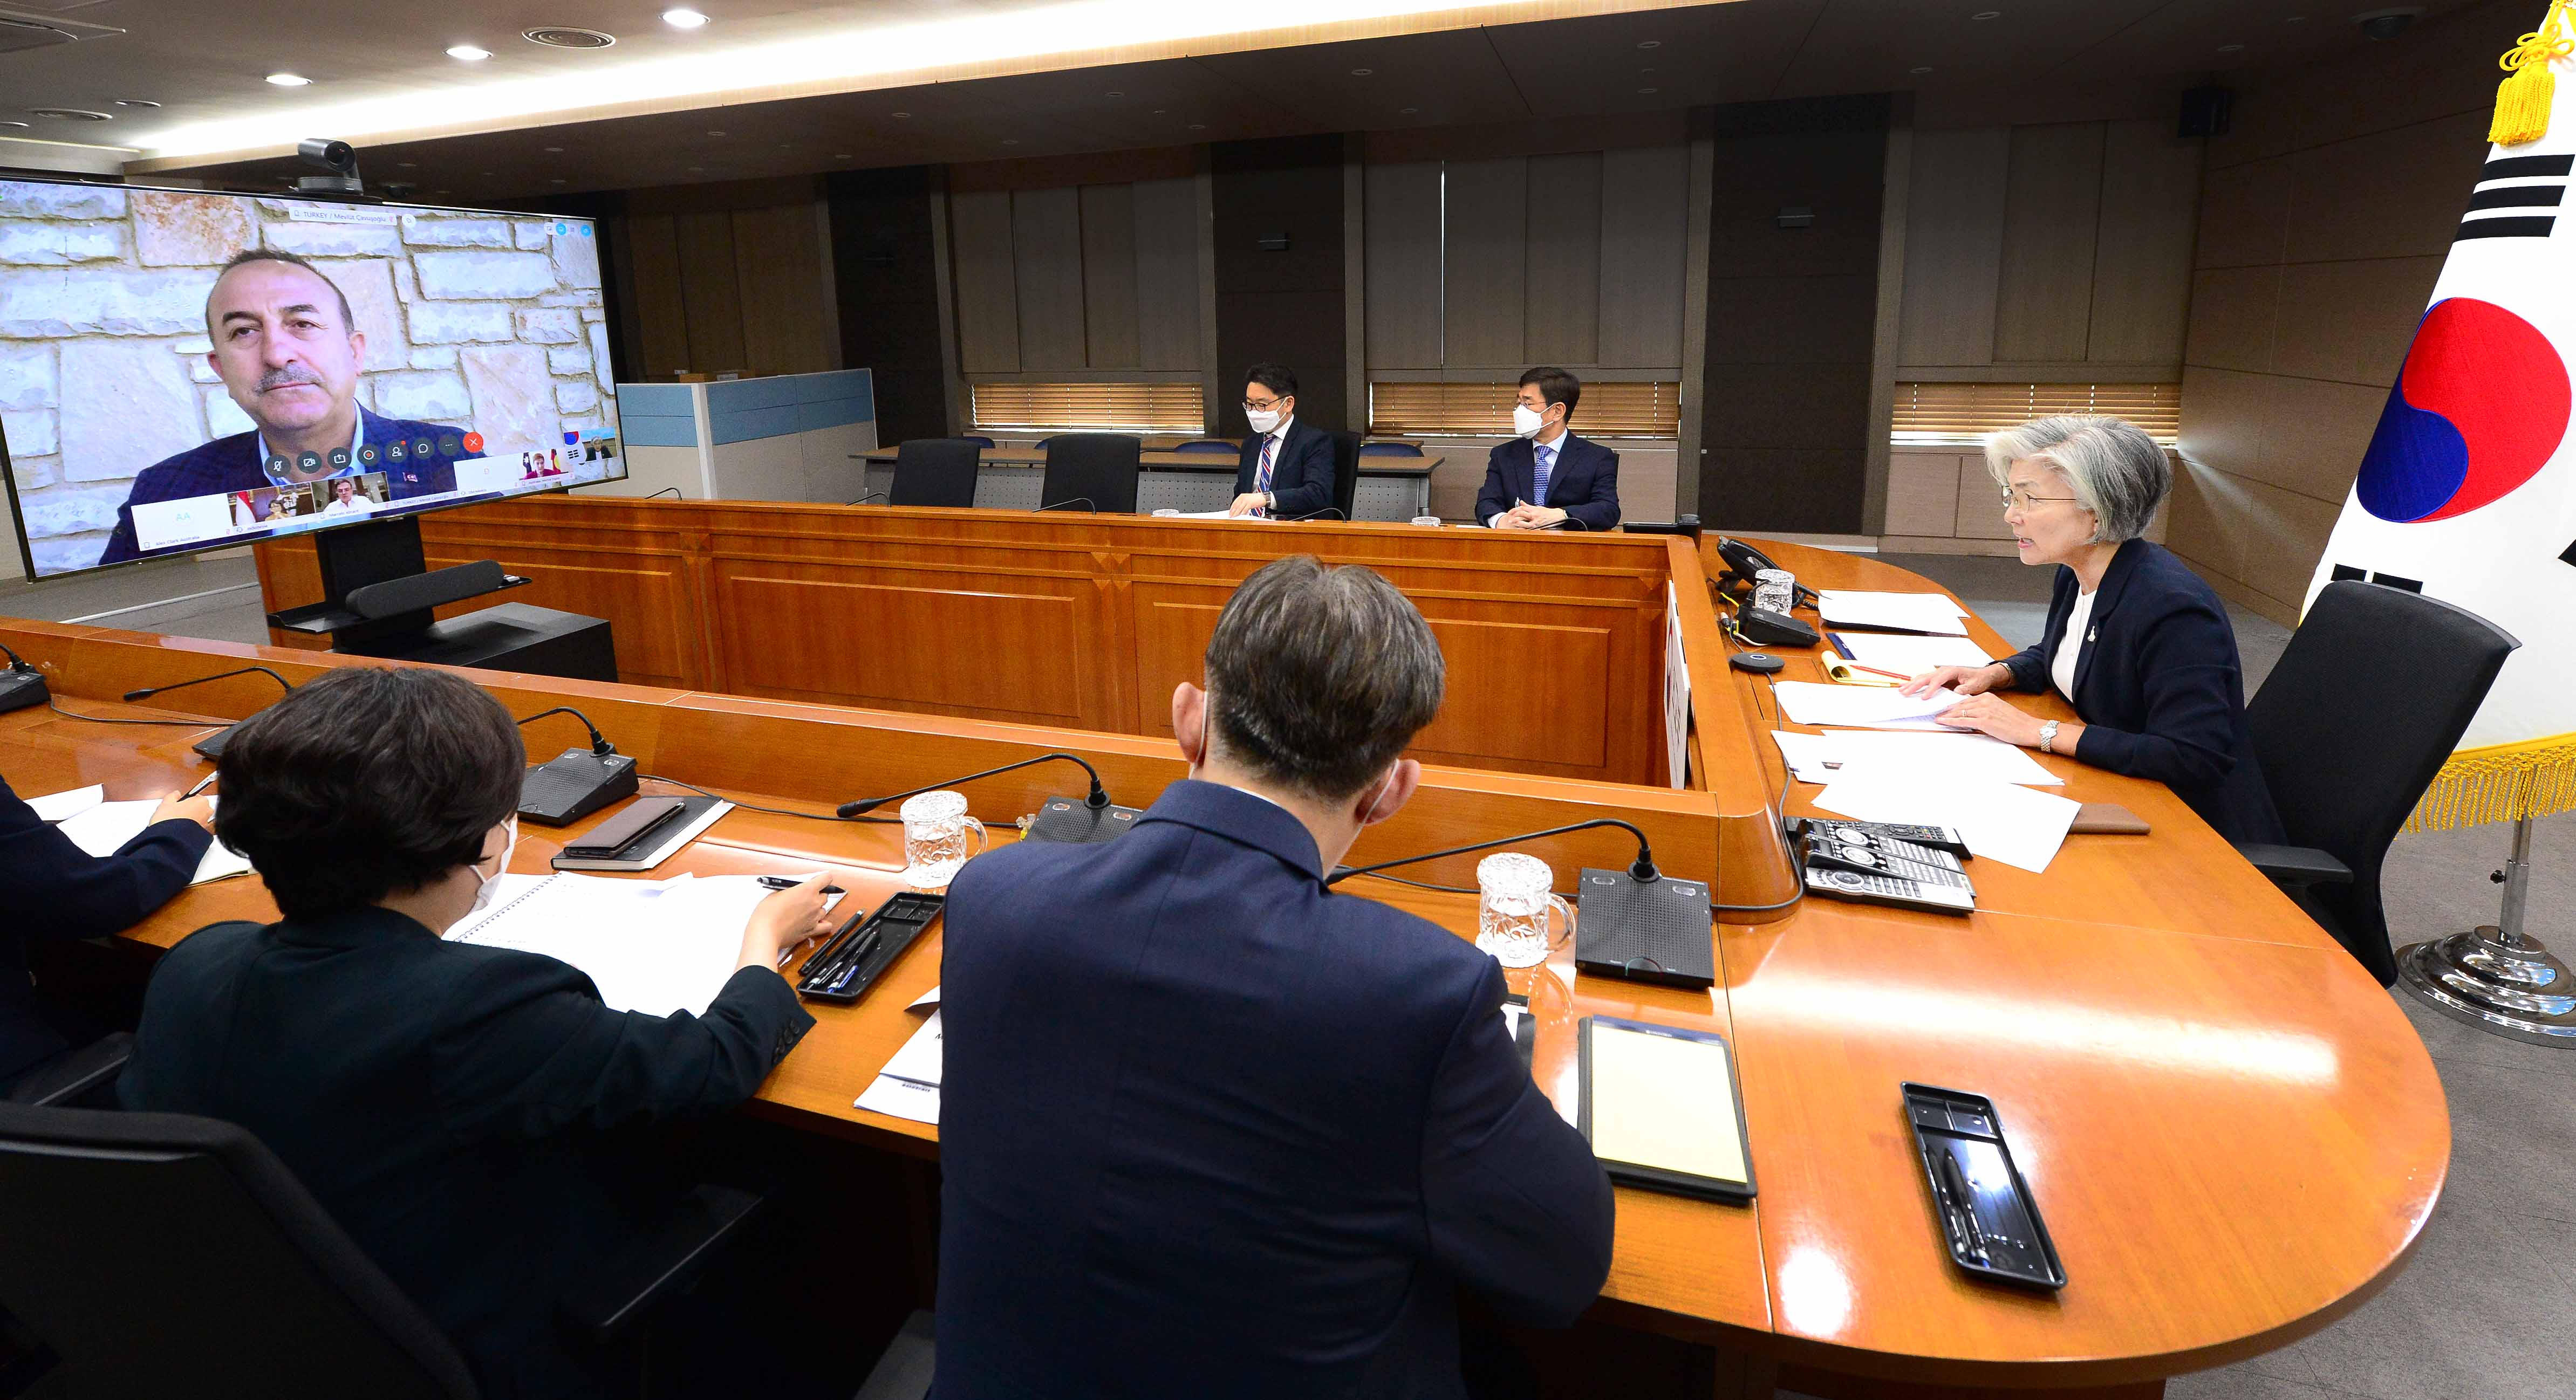 [Jul 19] Korea hosts the 17th MIKTA Foreign Ministers Meeting